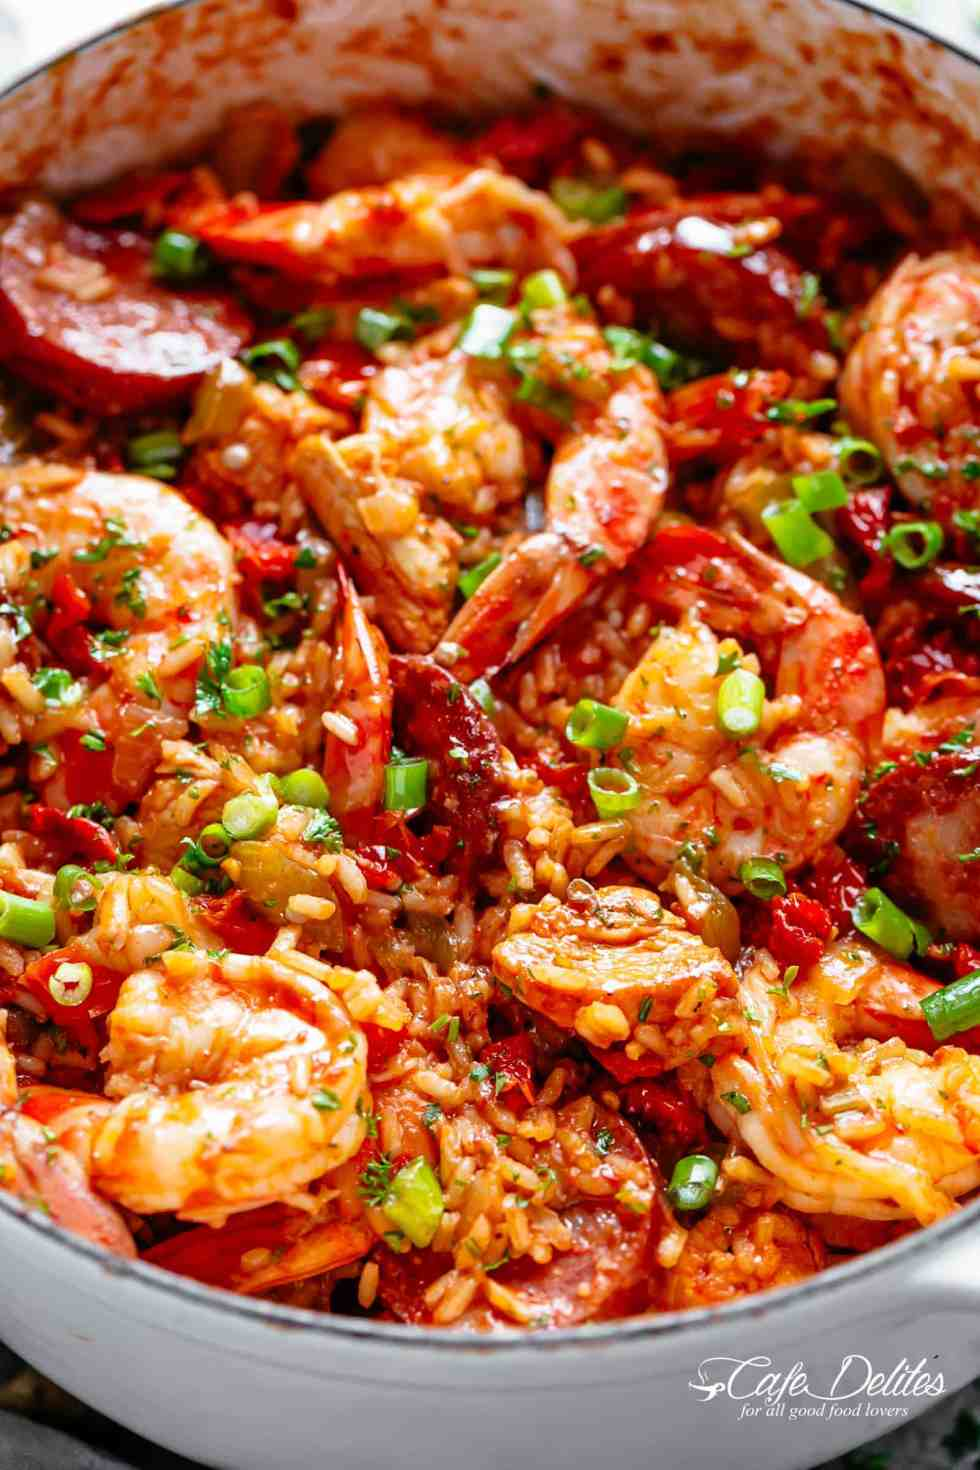 Jambalaya recipe with chicken, shrimp, andouille sausage, rice, seasonings, spices and incredible flavours! | cafedelites.com